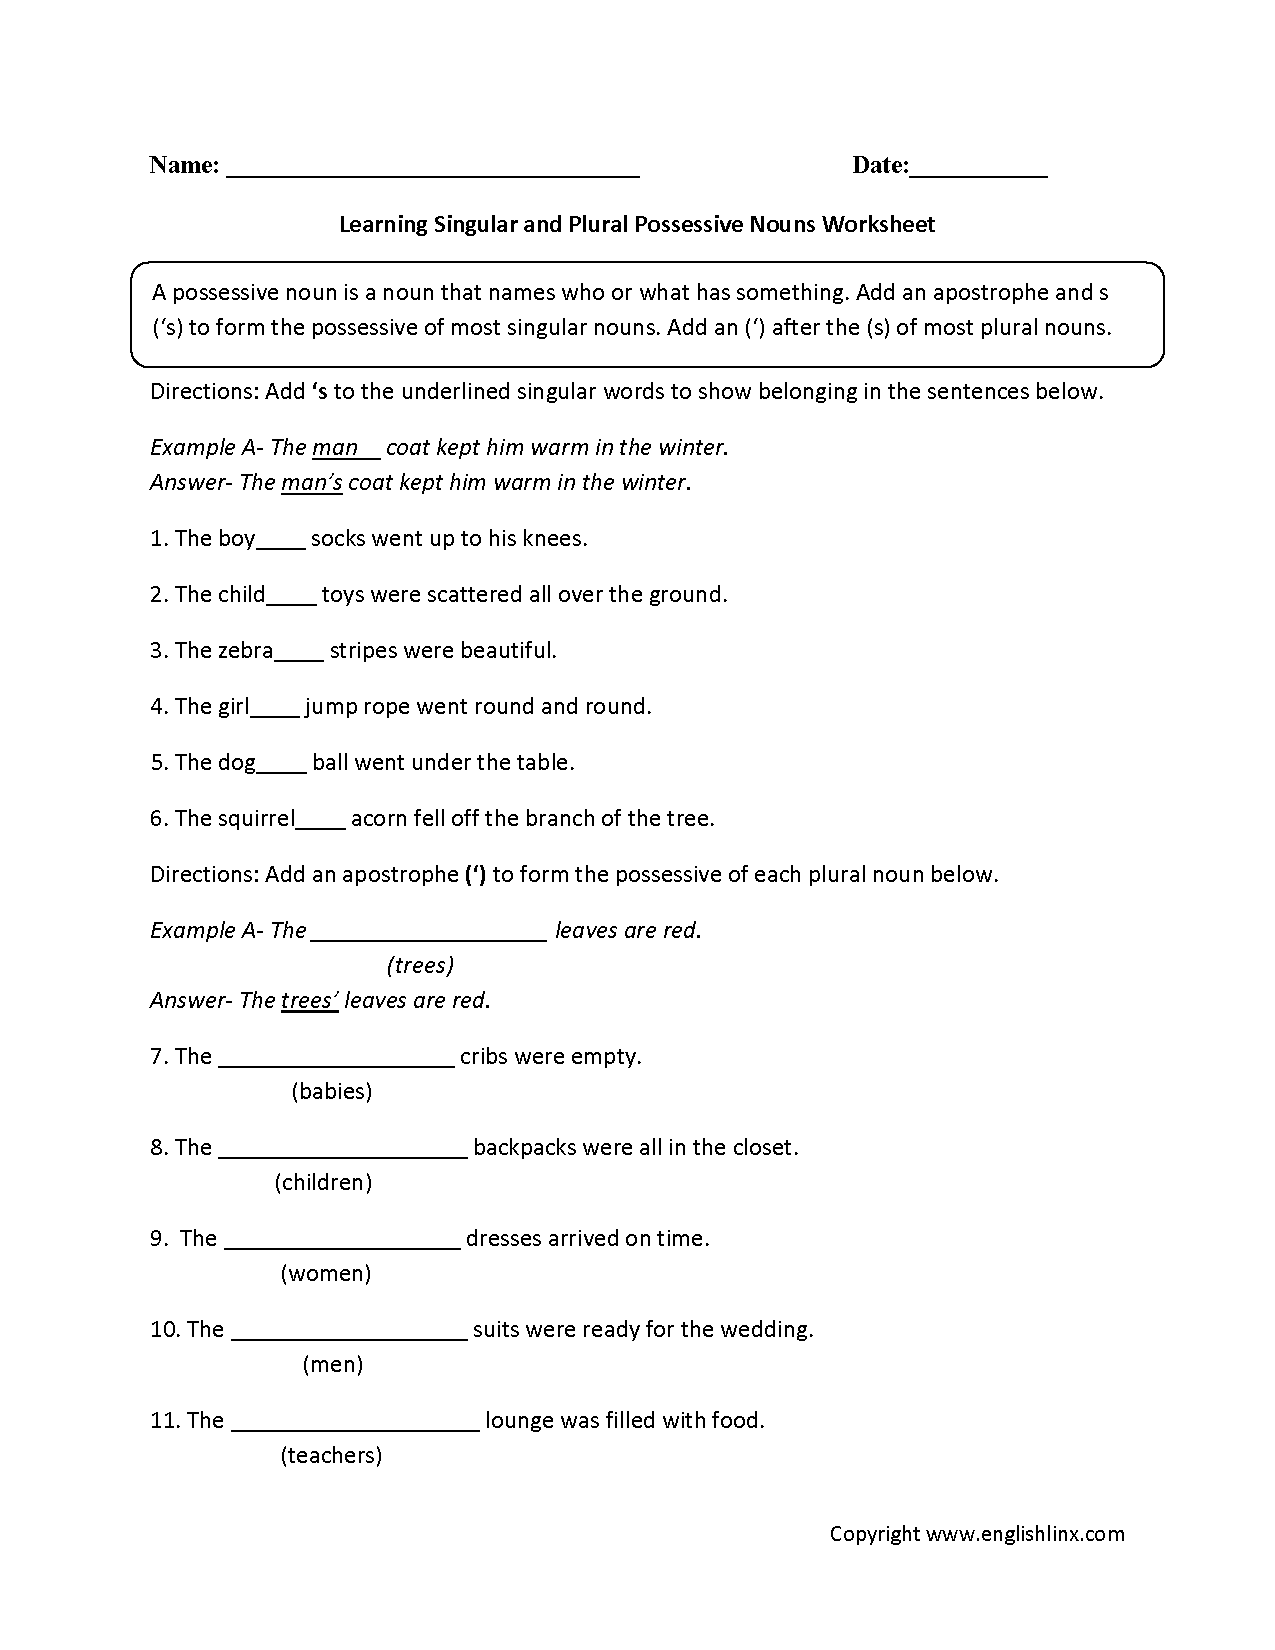 Worksheets Plural Possessive Nouns Worksheet nouns worksheets possessive learning singular and plural worksheet